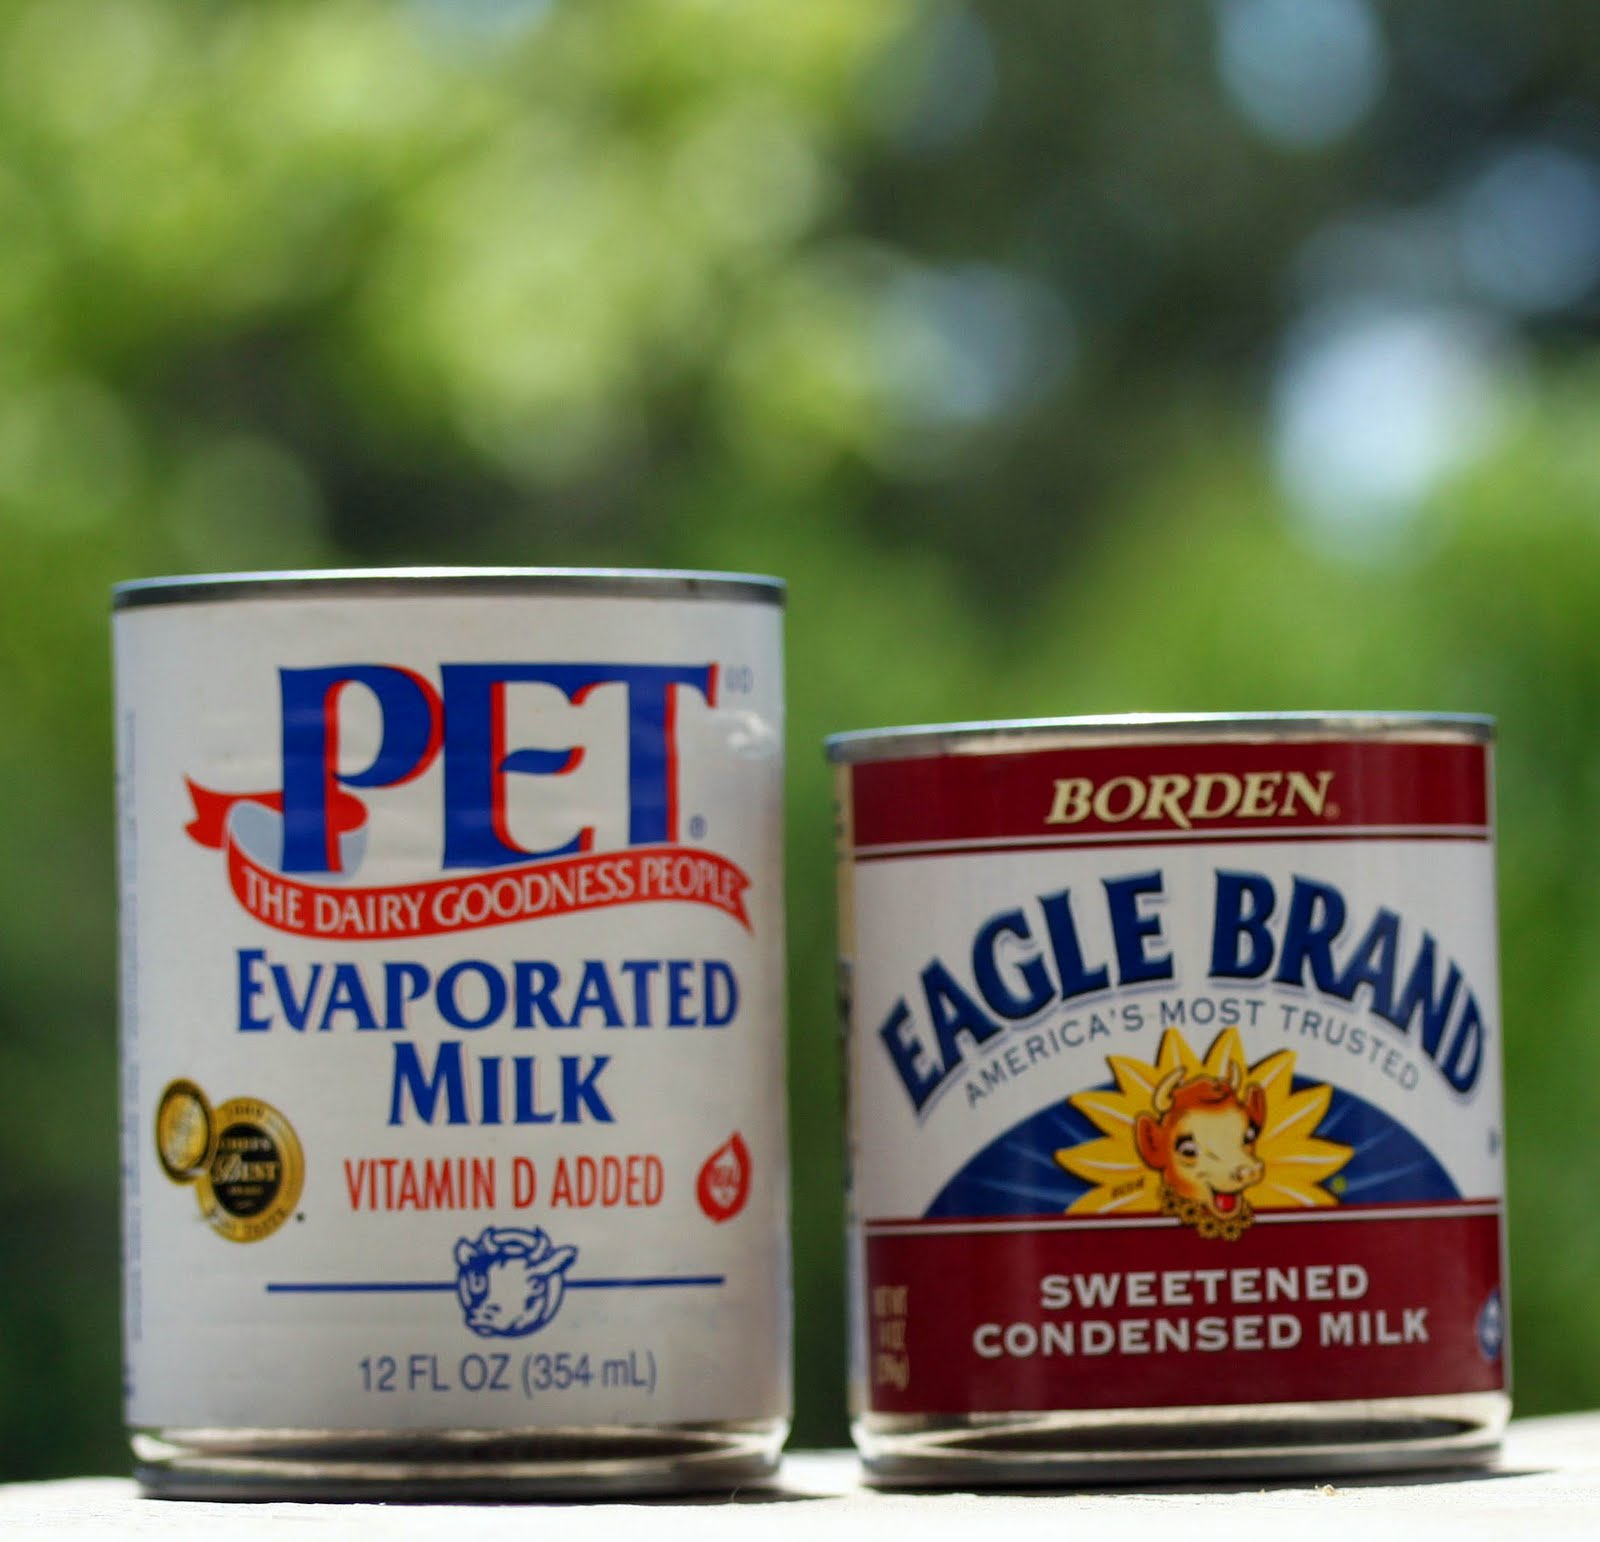 ... 1, 14oz can of sweetened condensed milk